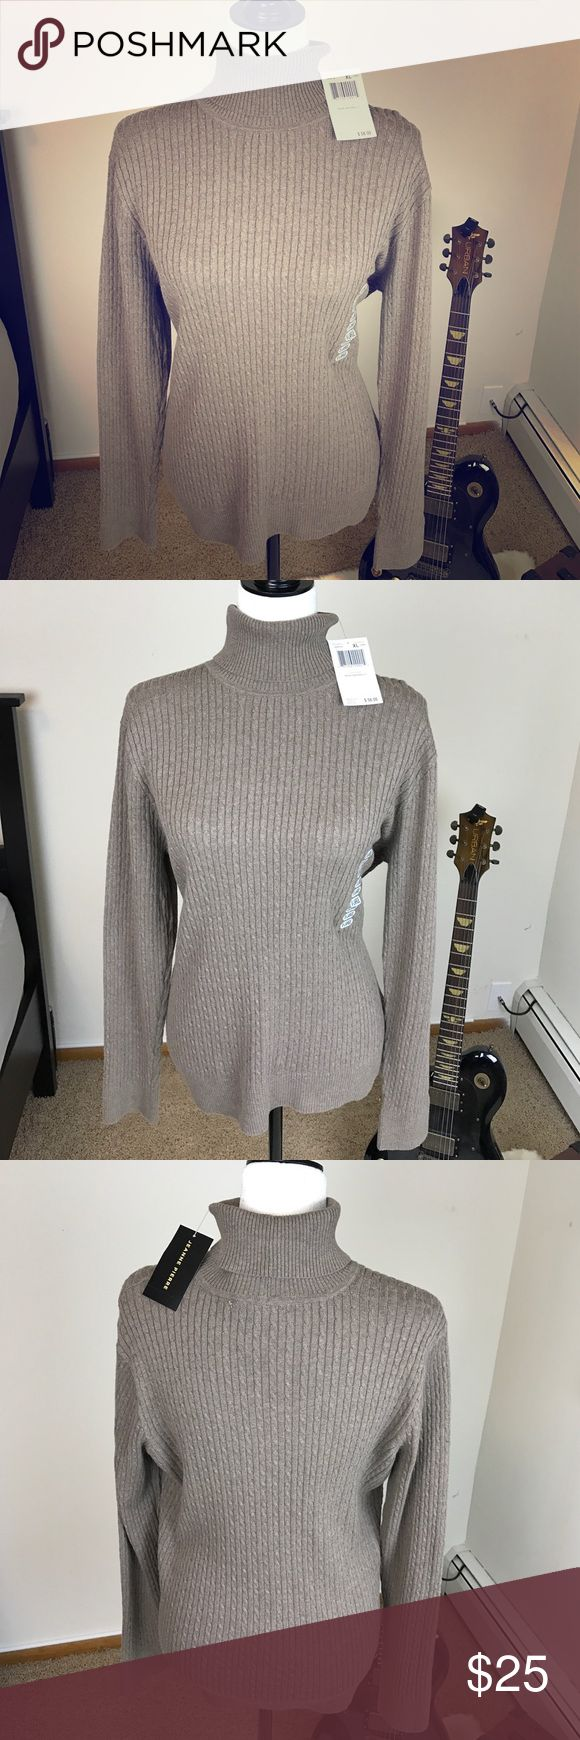 Jeanne Pierre Turtleneck in Taupe Heather Please feel free to ask any questions, bundle, or make an offer:) Jeanne Pierre turtleneck in taupe heather color. Size women's XL. New with tags. Jeanne Pierre Sweaters Cowl & Turtlenecks